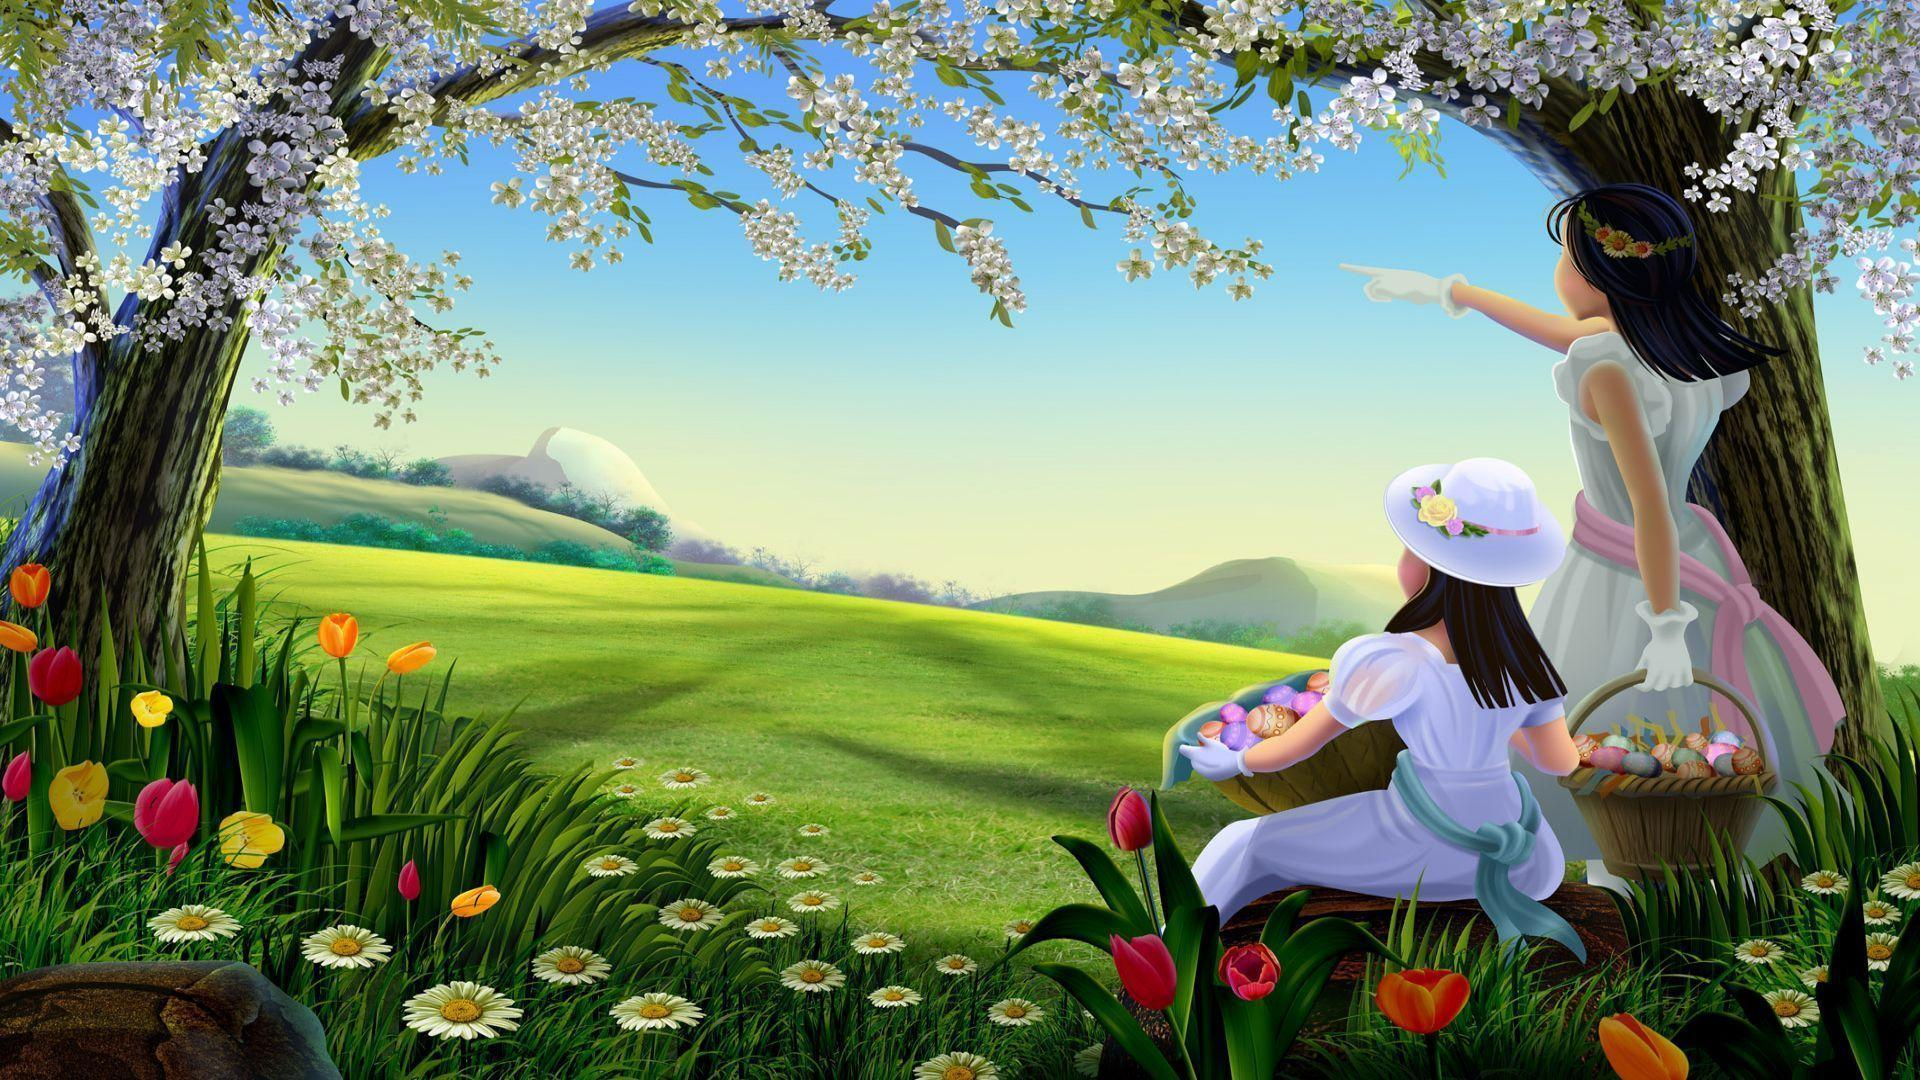 Cartoon Backgrounds 68 328262 High Definition Wallpapers